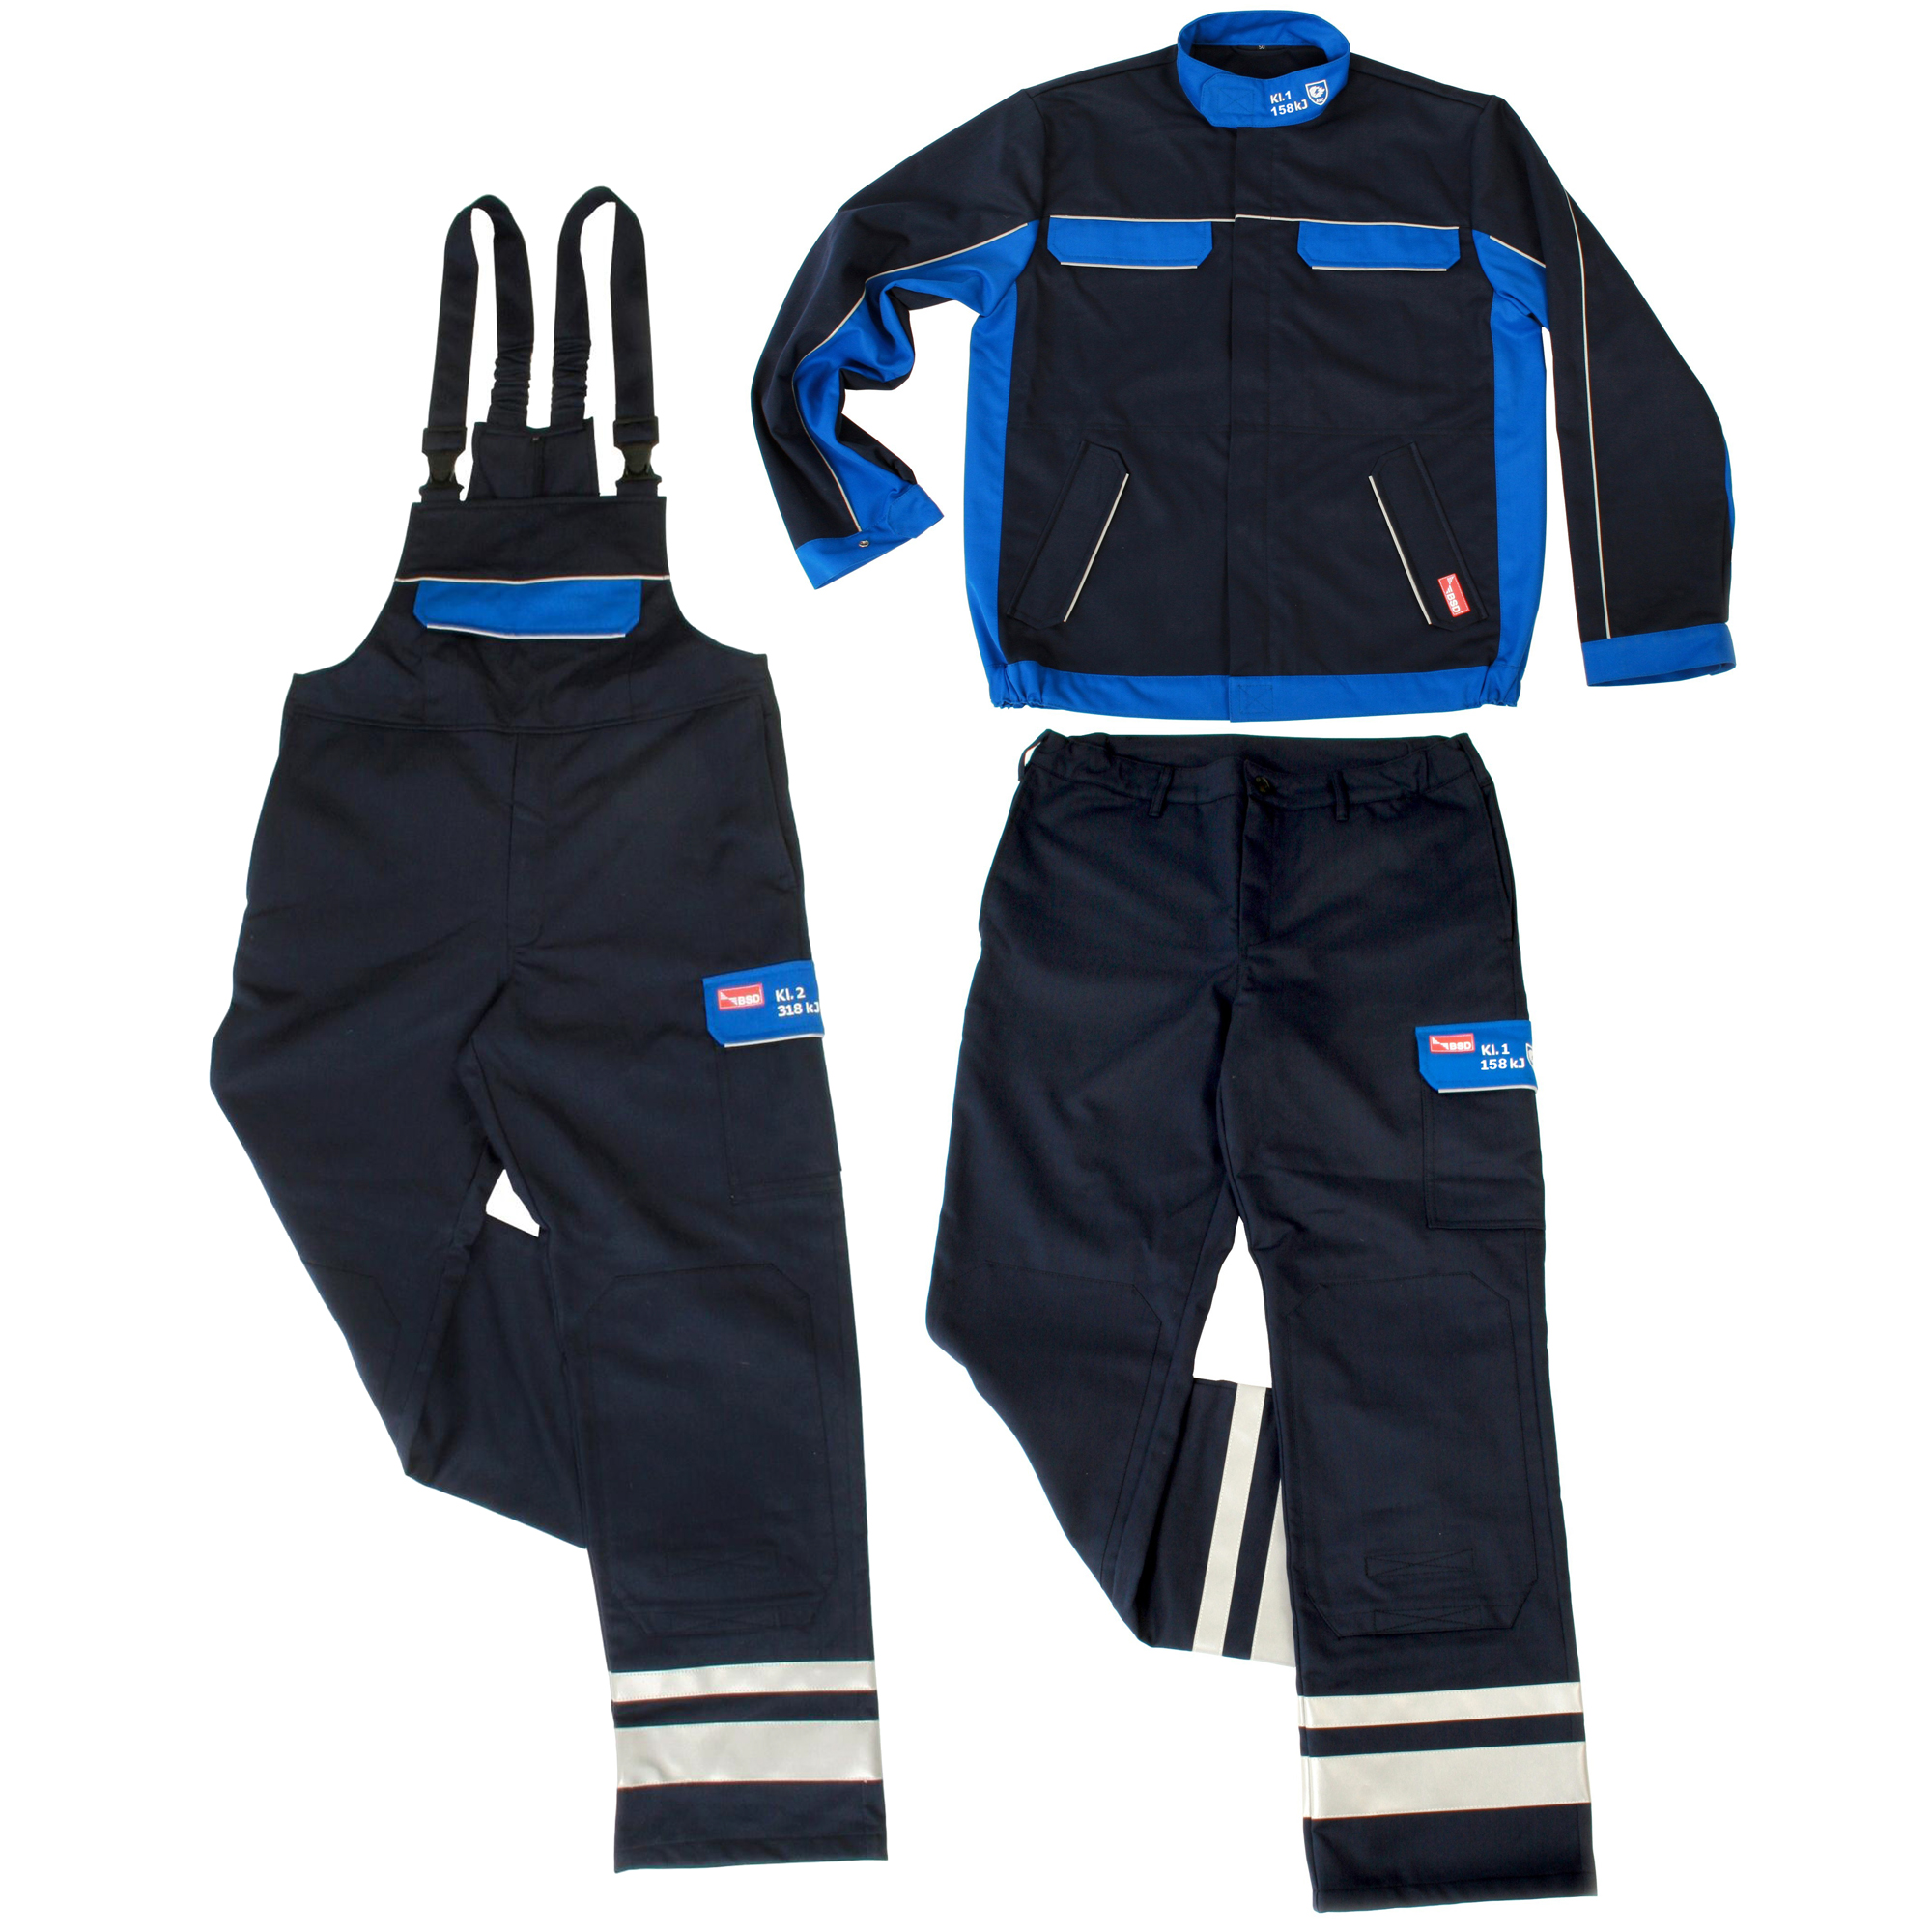 BSD COMFORT ARC FLASH JACKET, DUNGAREES AND TROUSERS - 22.0 CAL/CM2 - CLASS 2, 318 KJ